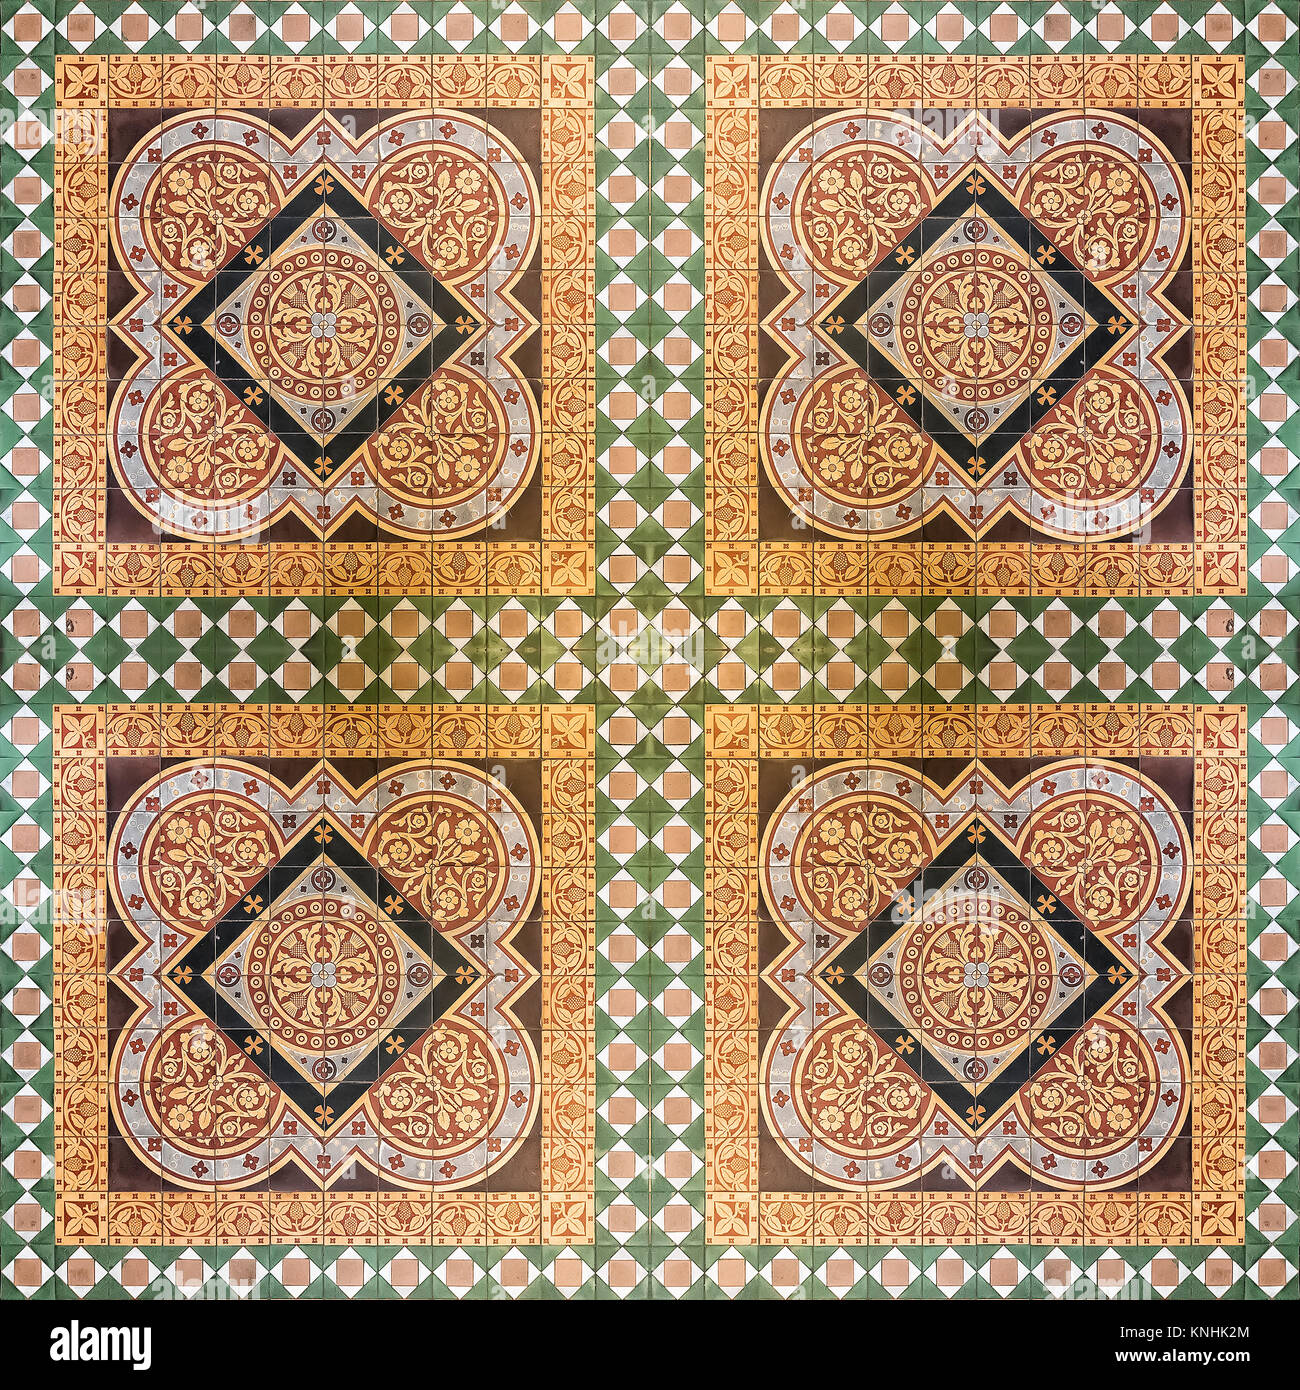 A seamless background image of patterned ceramic tiles from Glasgow ...